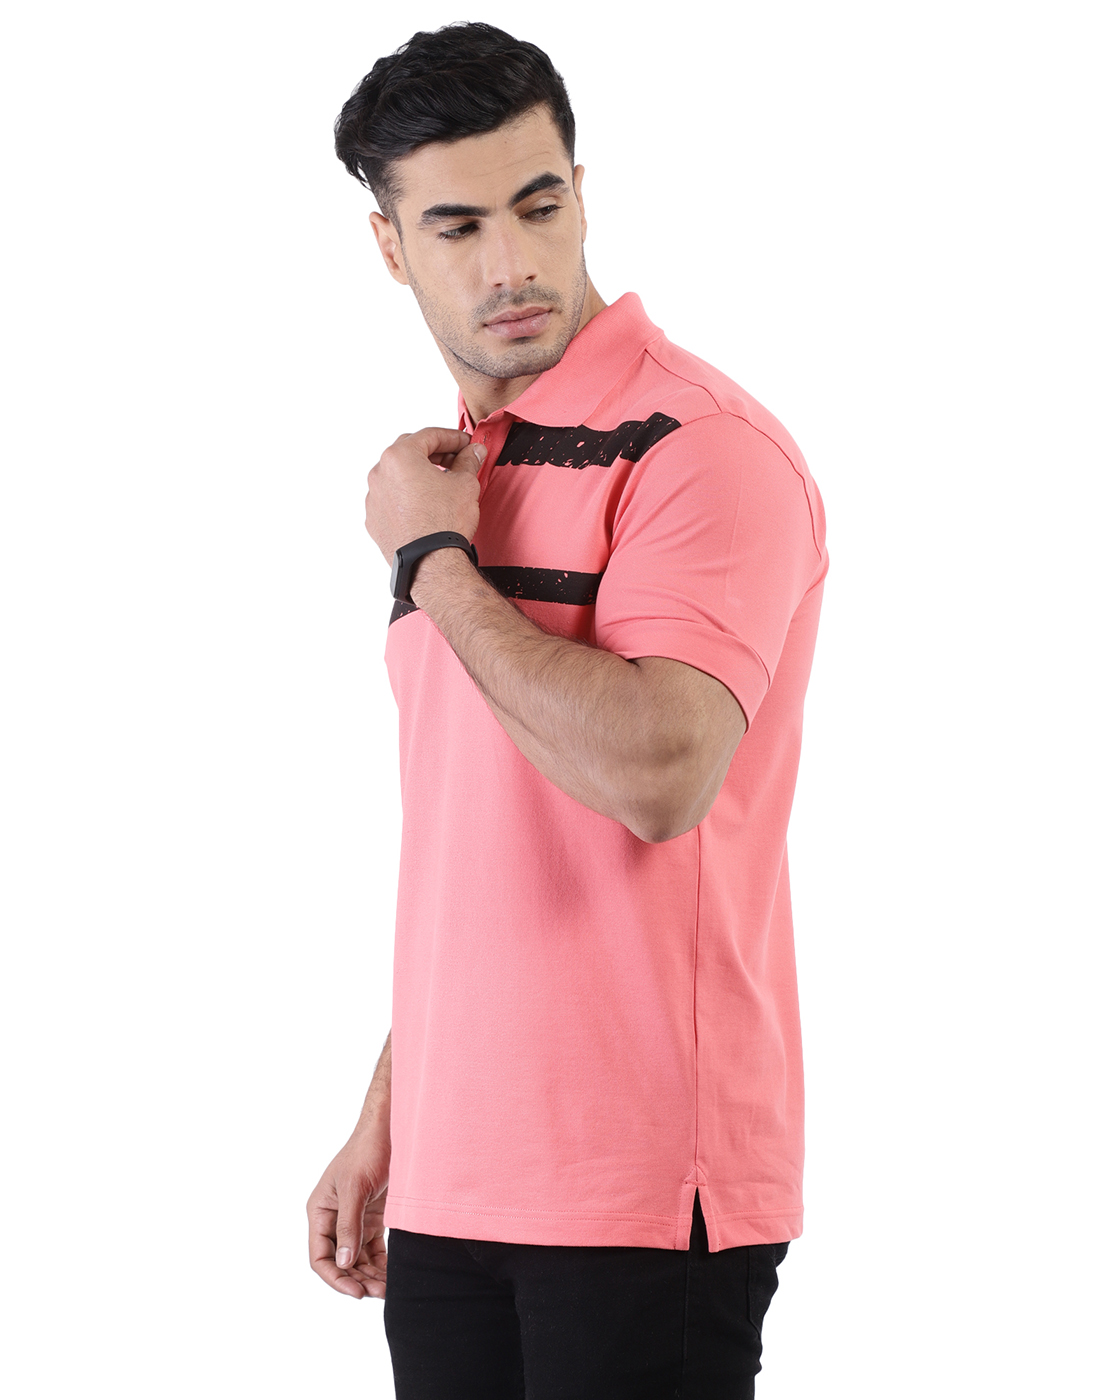 YOONOY | men slim fit polo tee with rib detail at sleeve, stripe print at chest and side slit